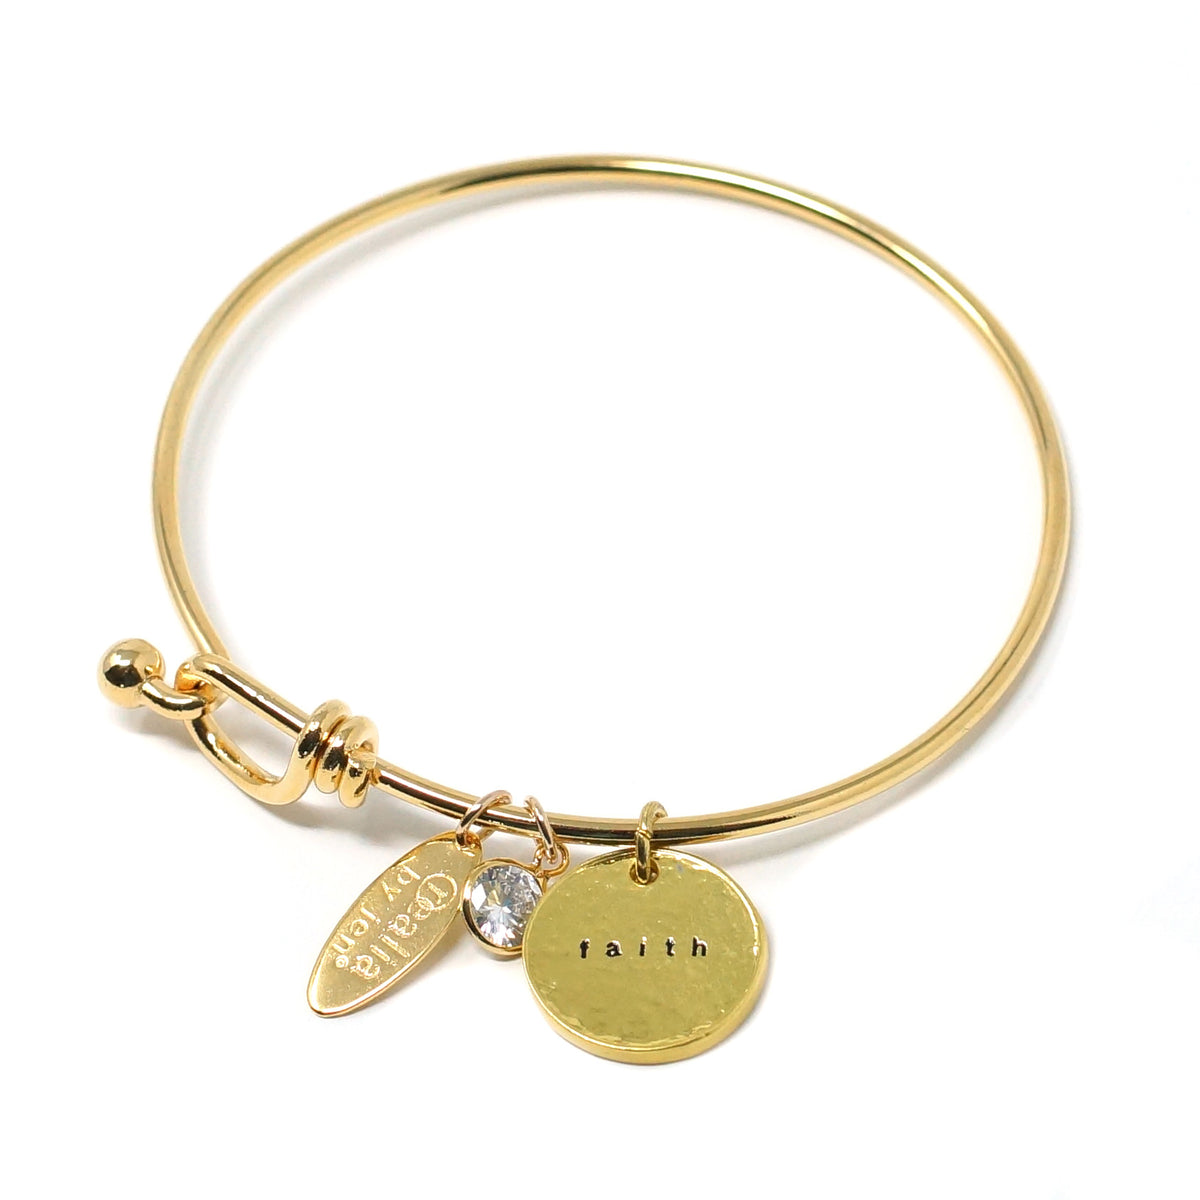 Faith (Bangle, Gold)